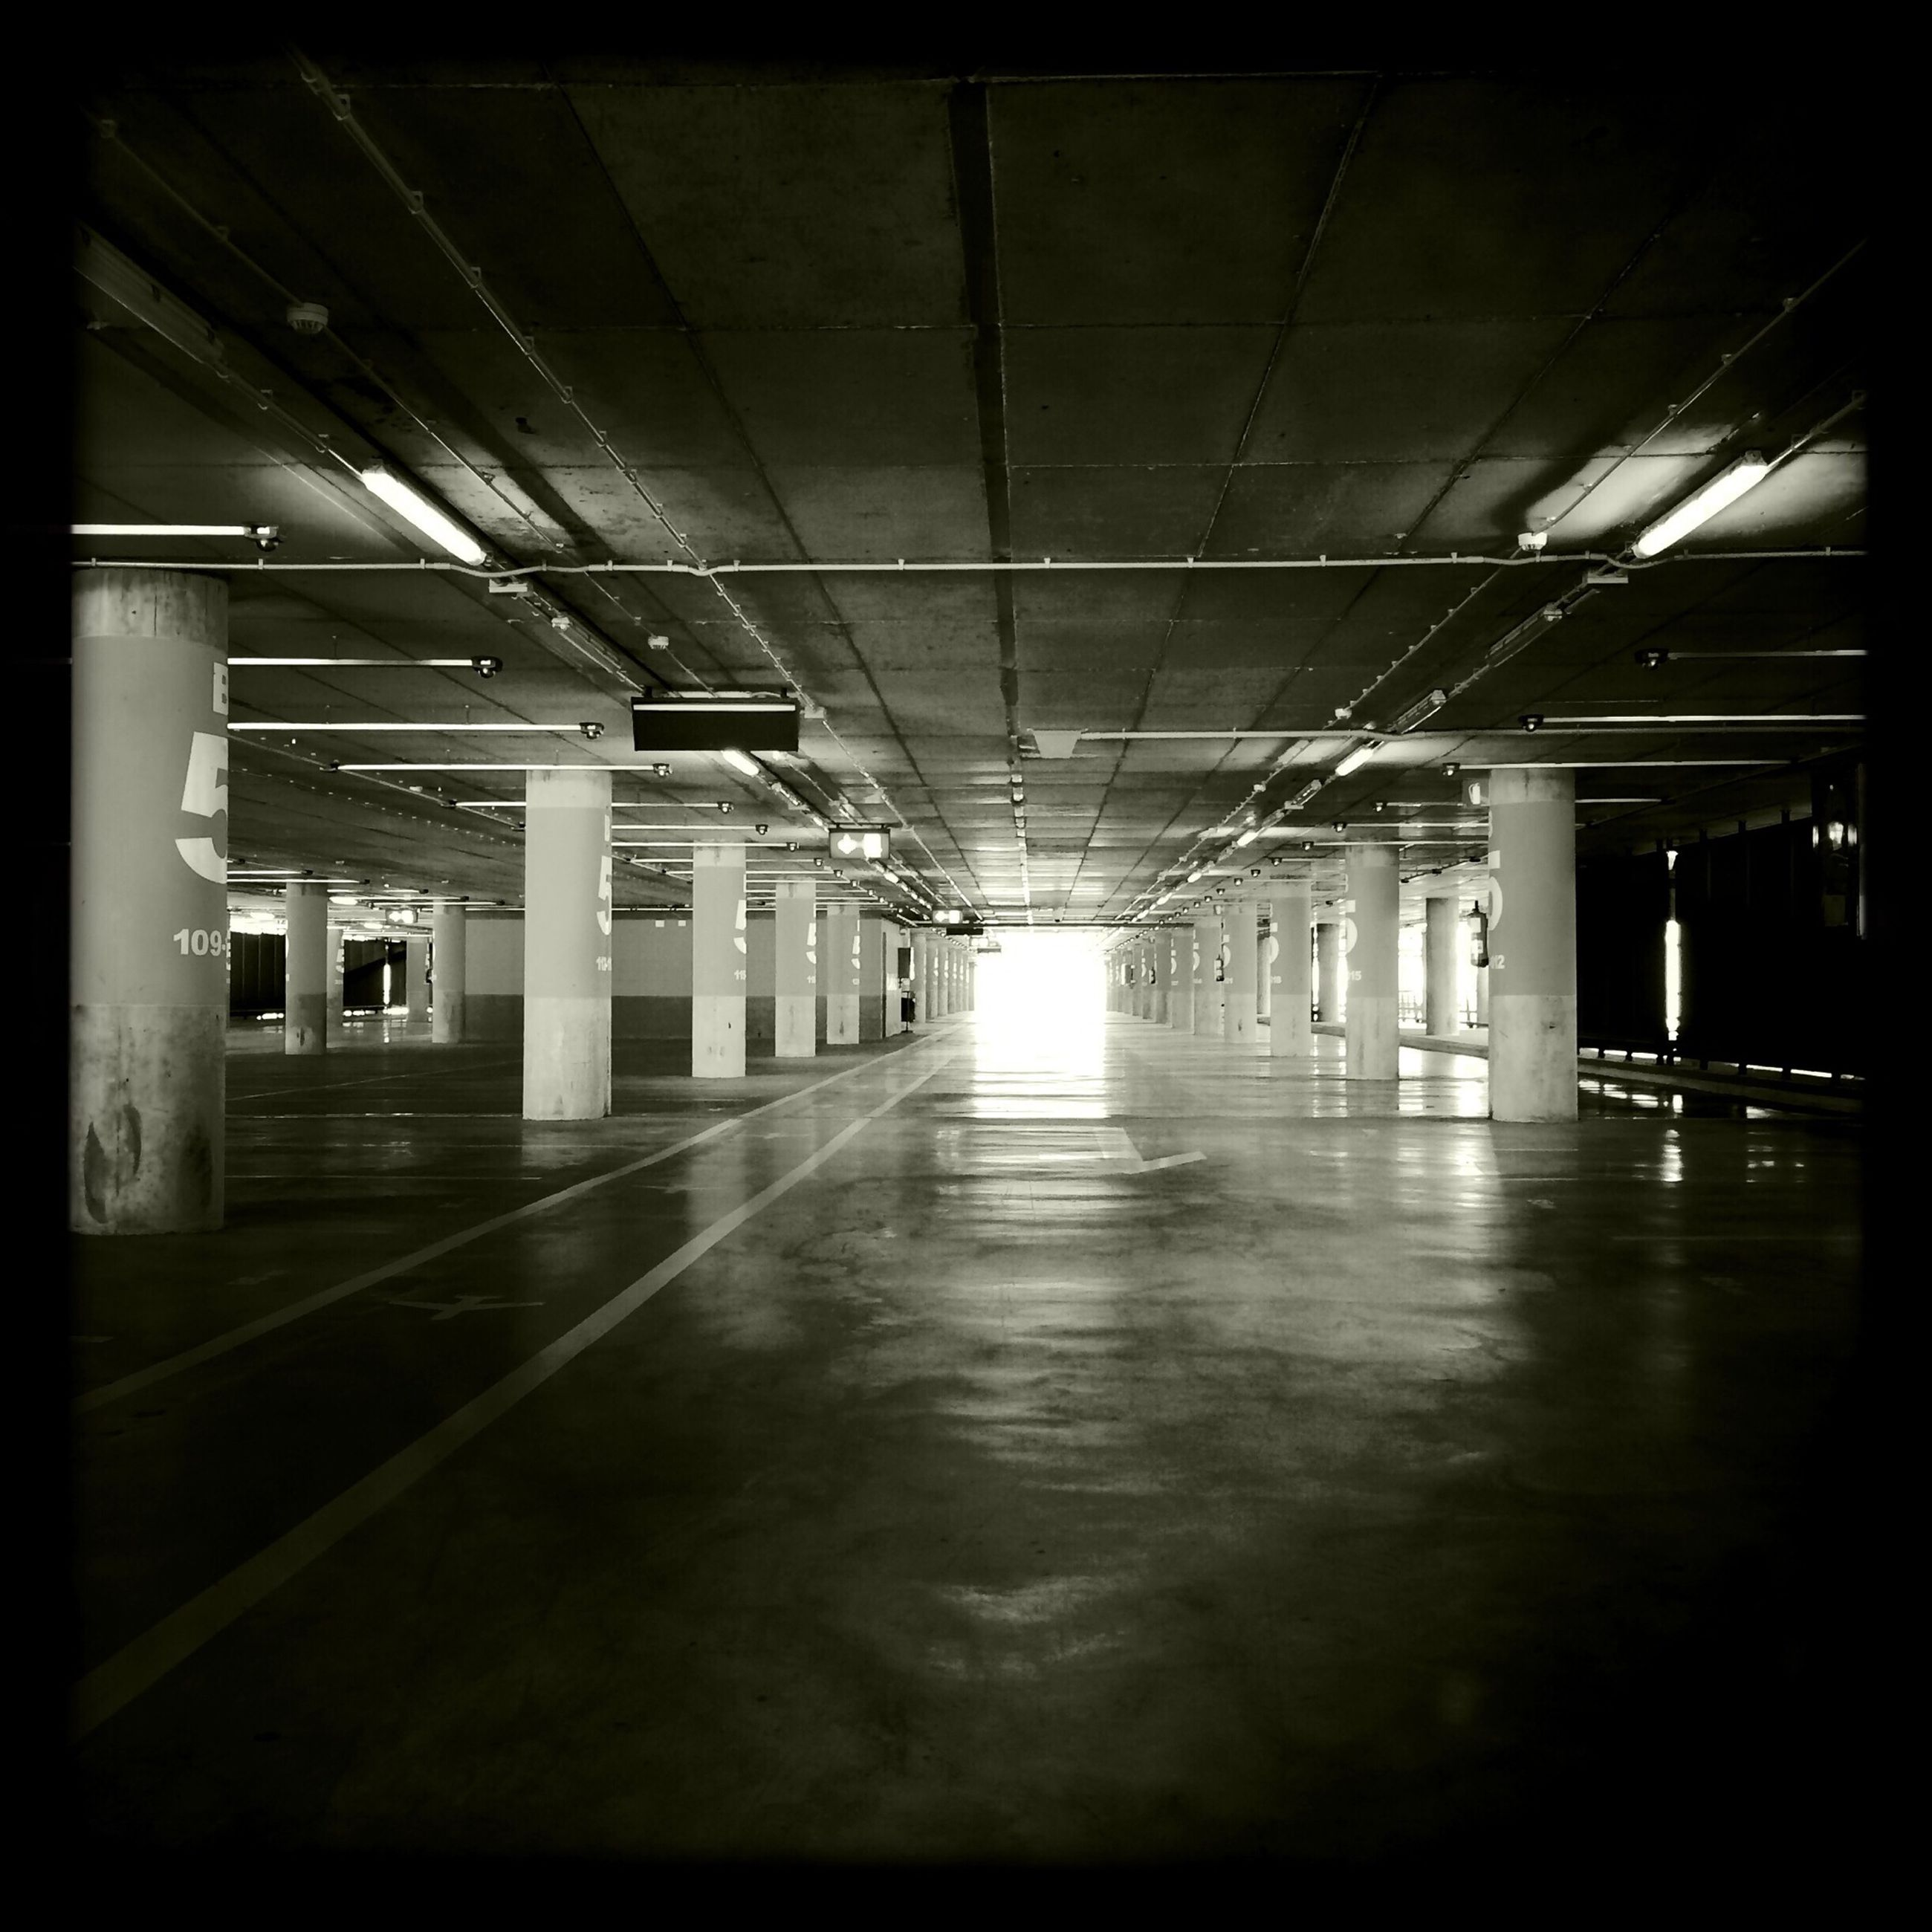 indoors, ceiling, architecture, built structure, the way forward, illuminated, empty, corridor, transportation, diminishing perspective, interior, flooring, absence, transfer print, architectural column, lighting equipment, long, auto post production filter, narrow, column